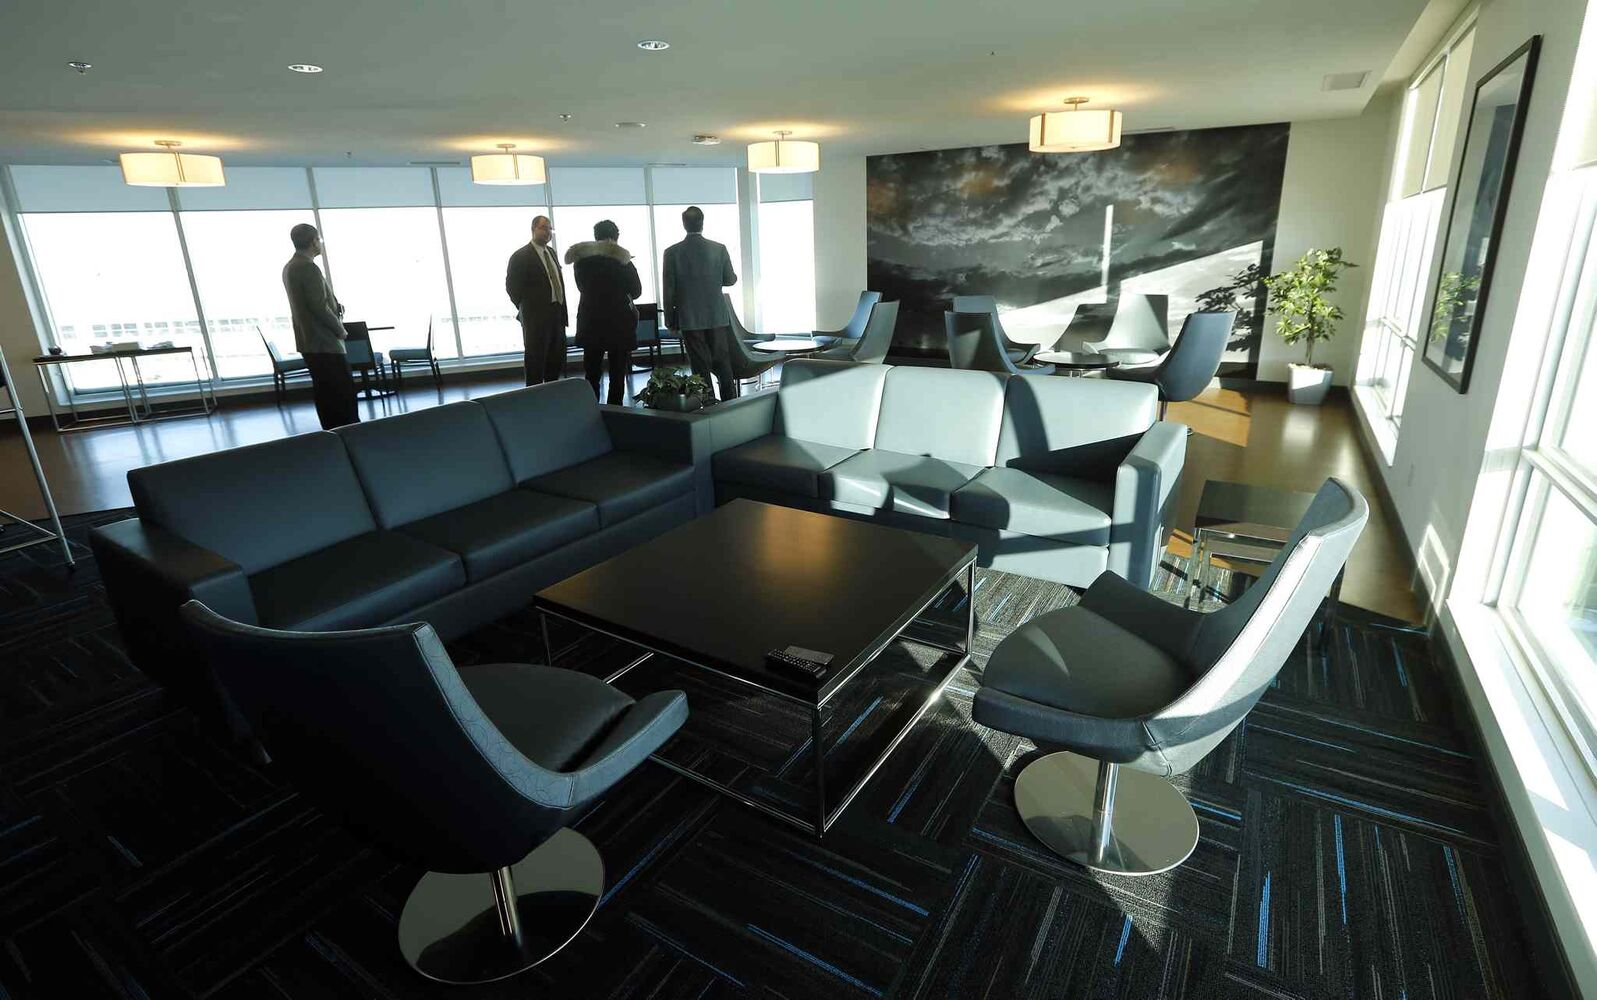 Runway 36: the executive lounge overlooking the tarmac. (KEN GIGLIOTTI / WINNIPEG FREE PRESS)